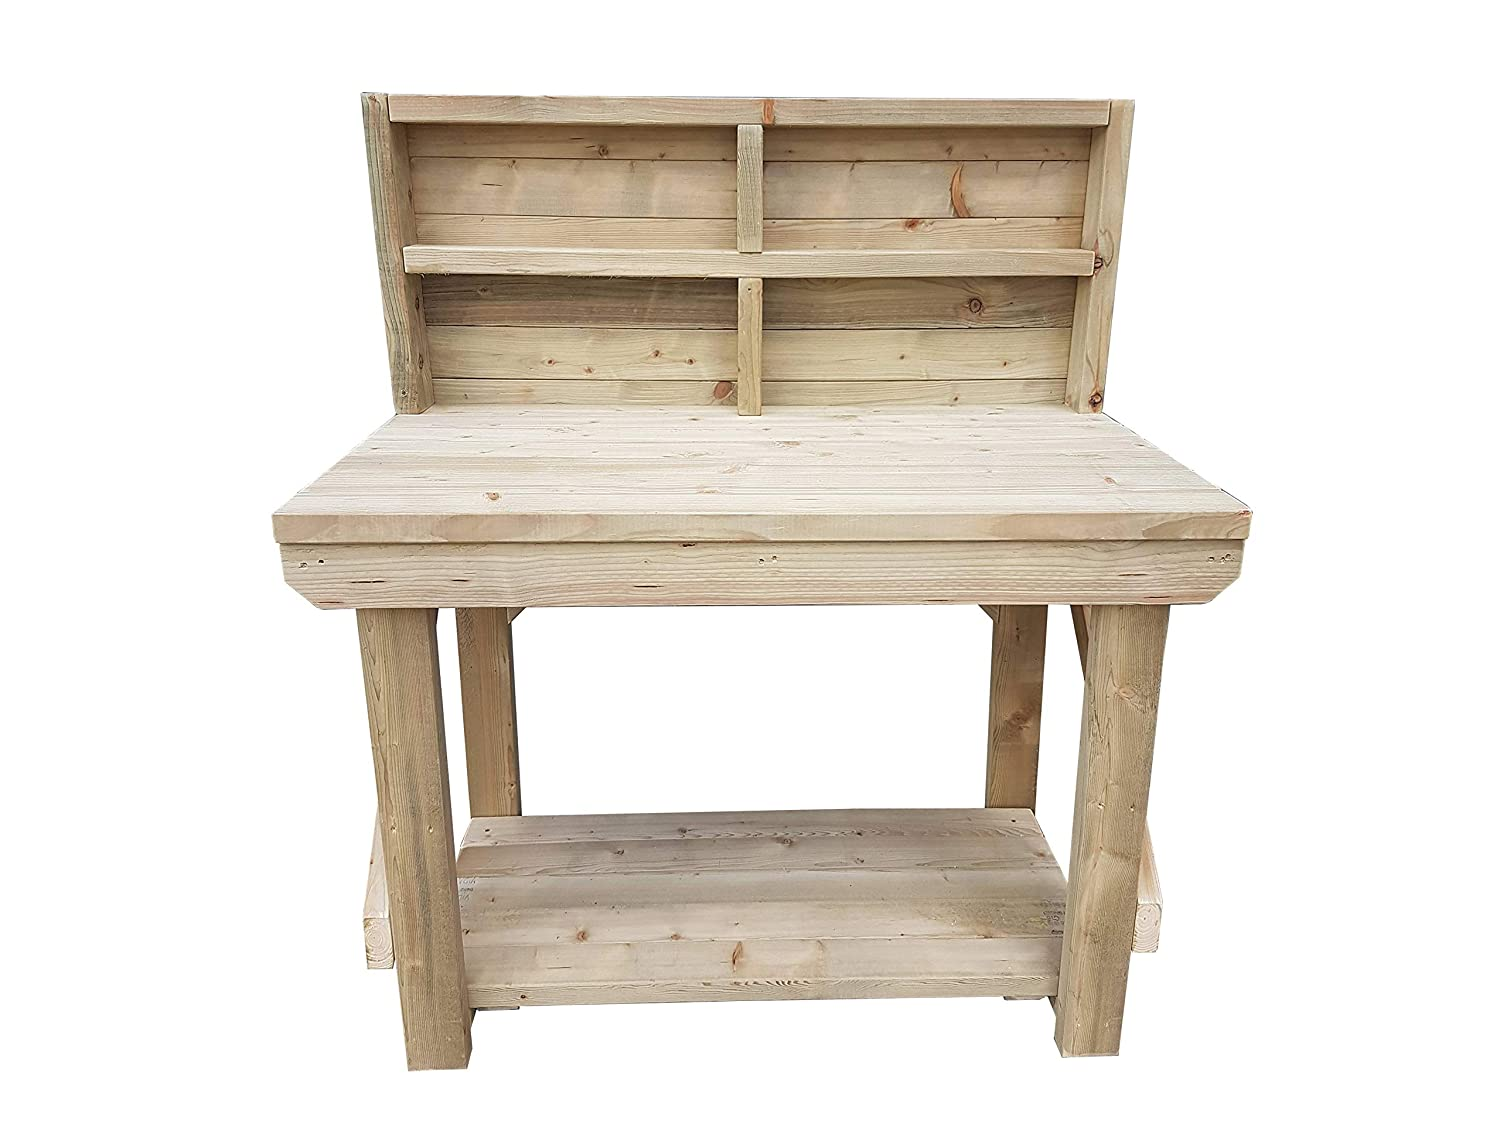 GMS TIMBER LTD Workbench With Back Panel Indoor / Outdoor - Pressure Treated - Heavy Duty - Handmade Garage Workshop Work Table (3FT)